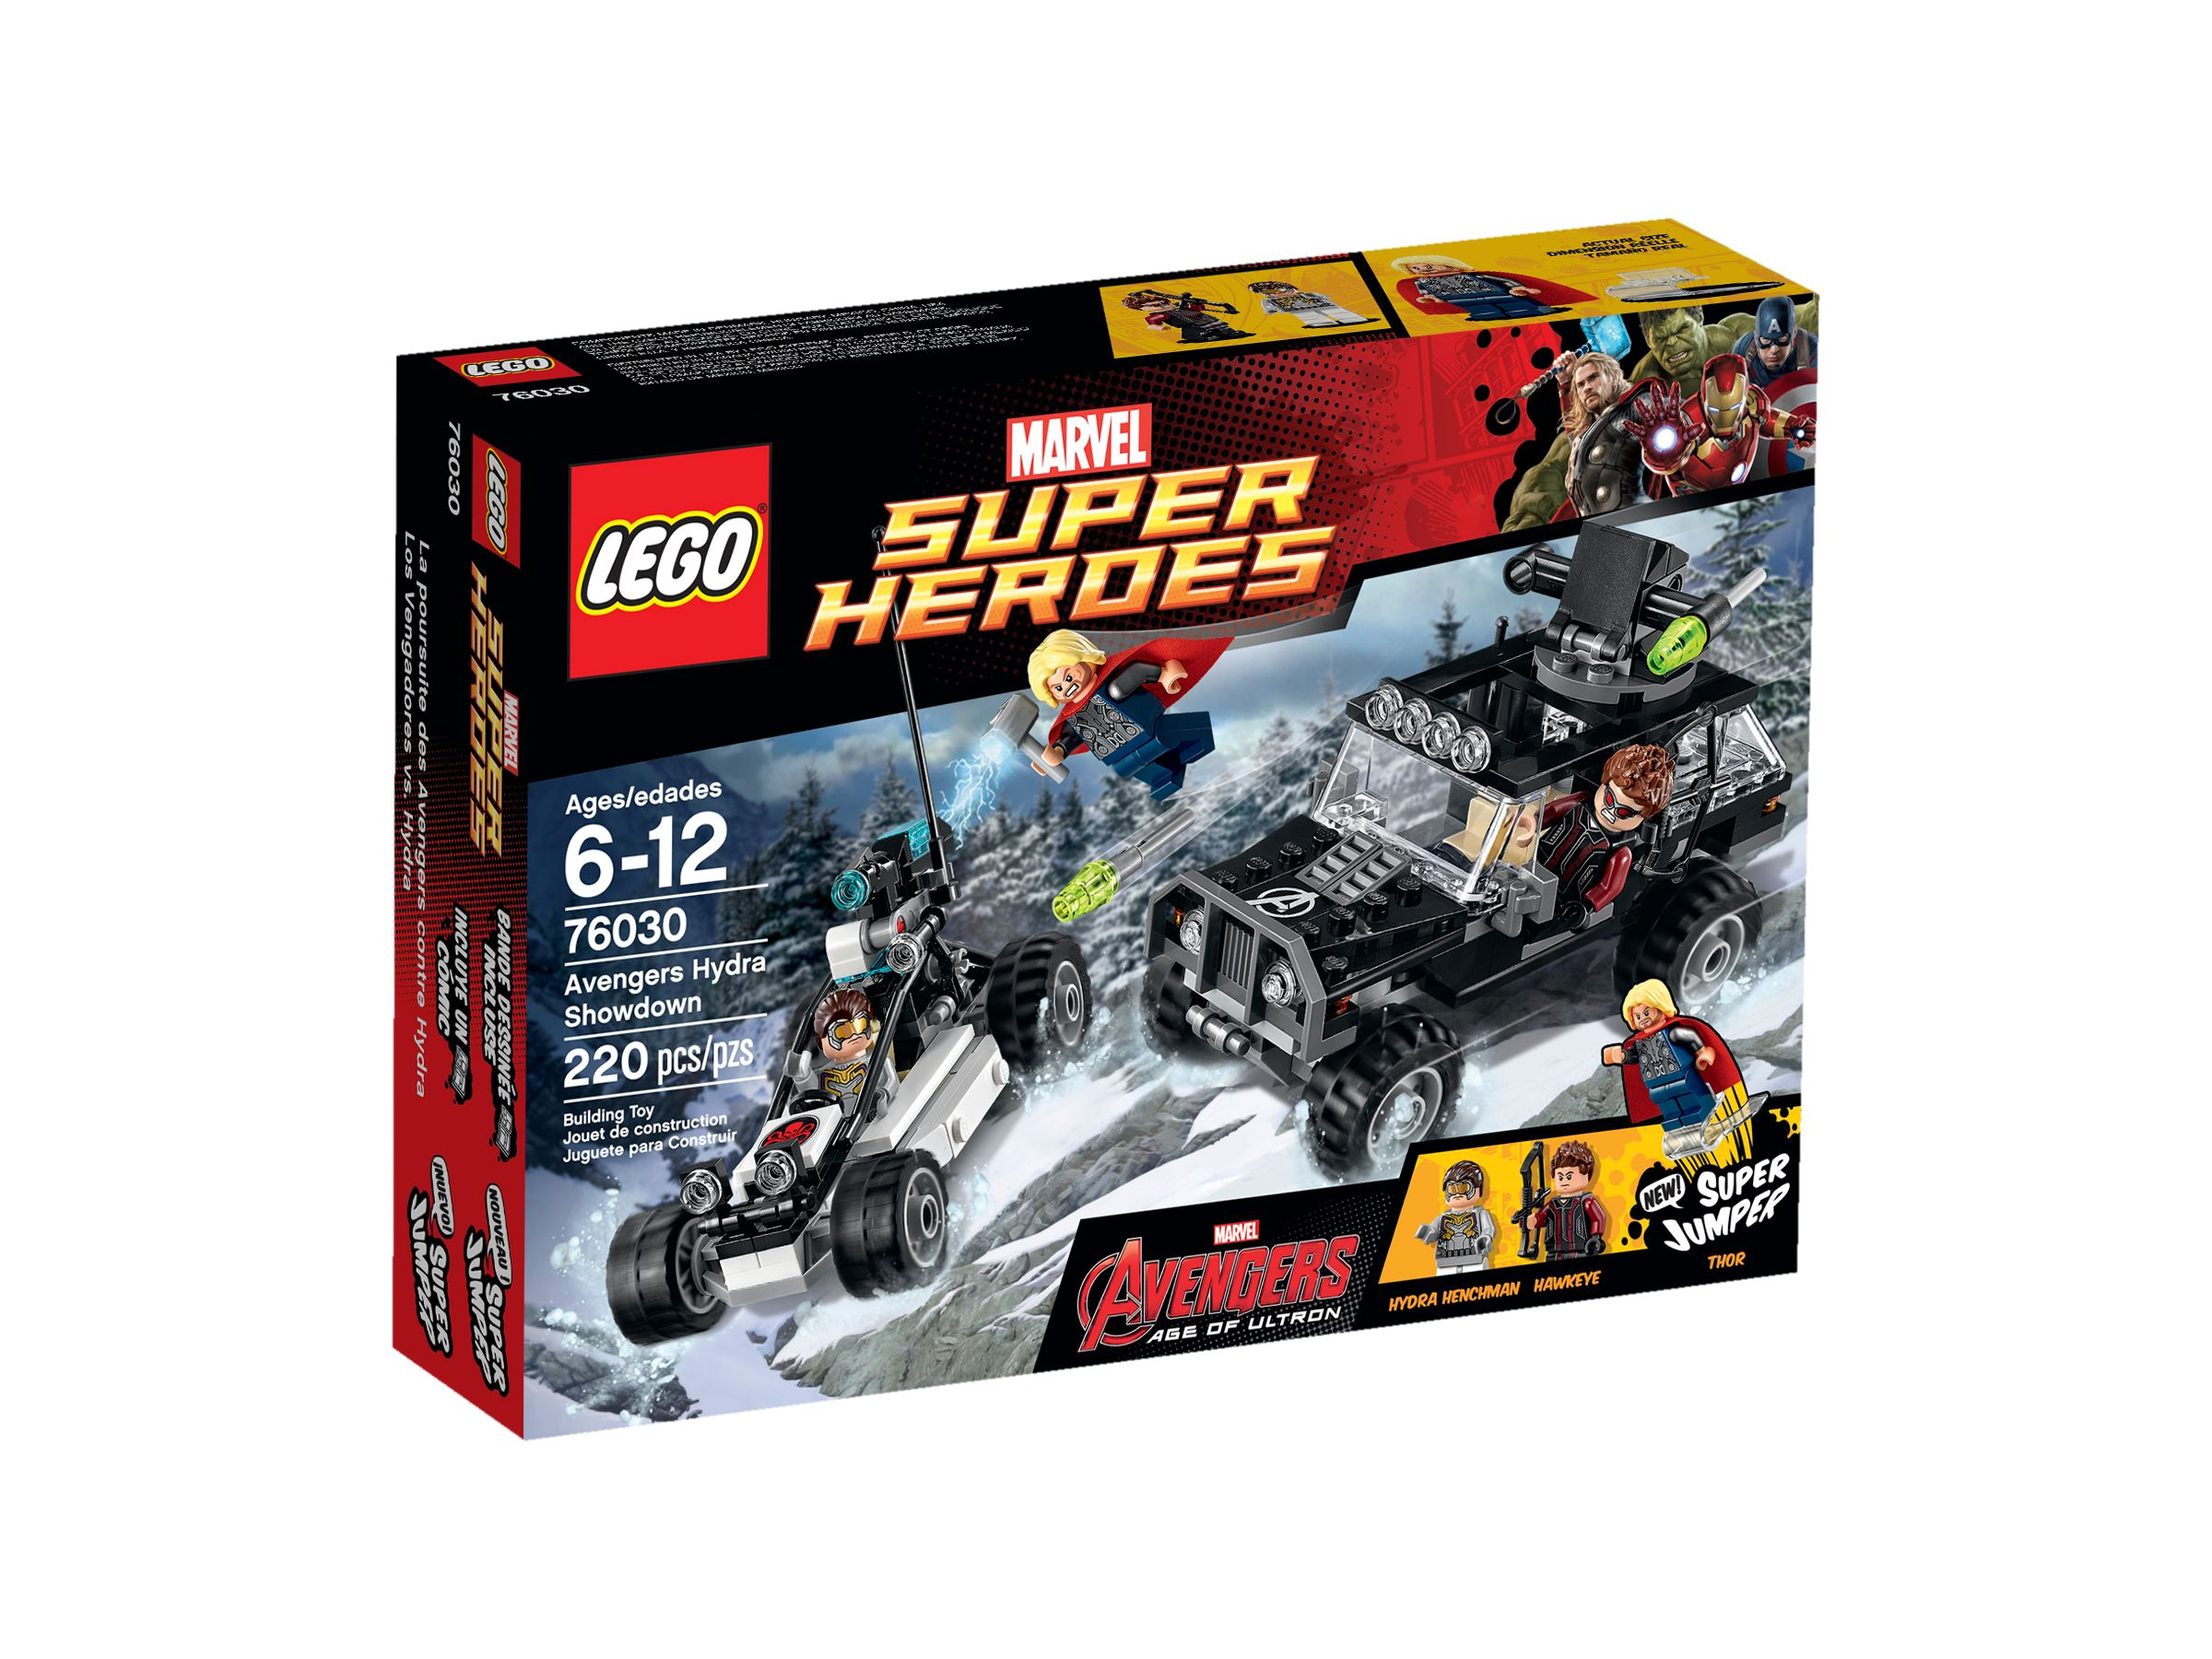 LEGO Super Heroes 76030 Avengers – Duell mit Hydra LEGO_76030_alt1.jpg